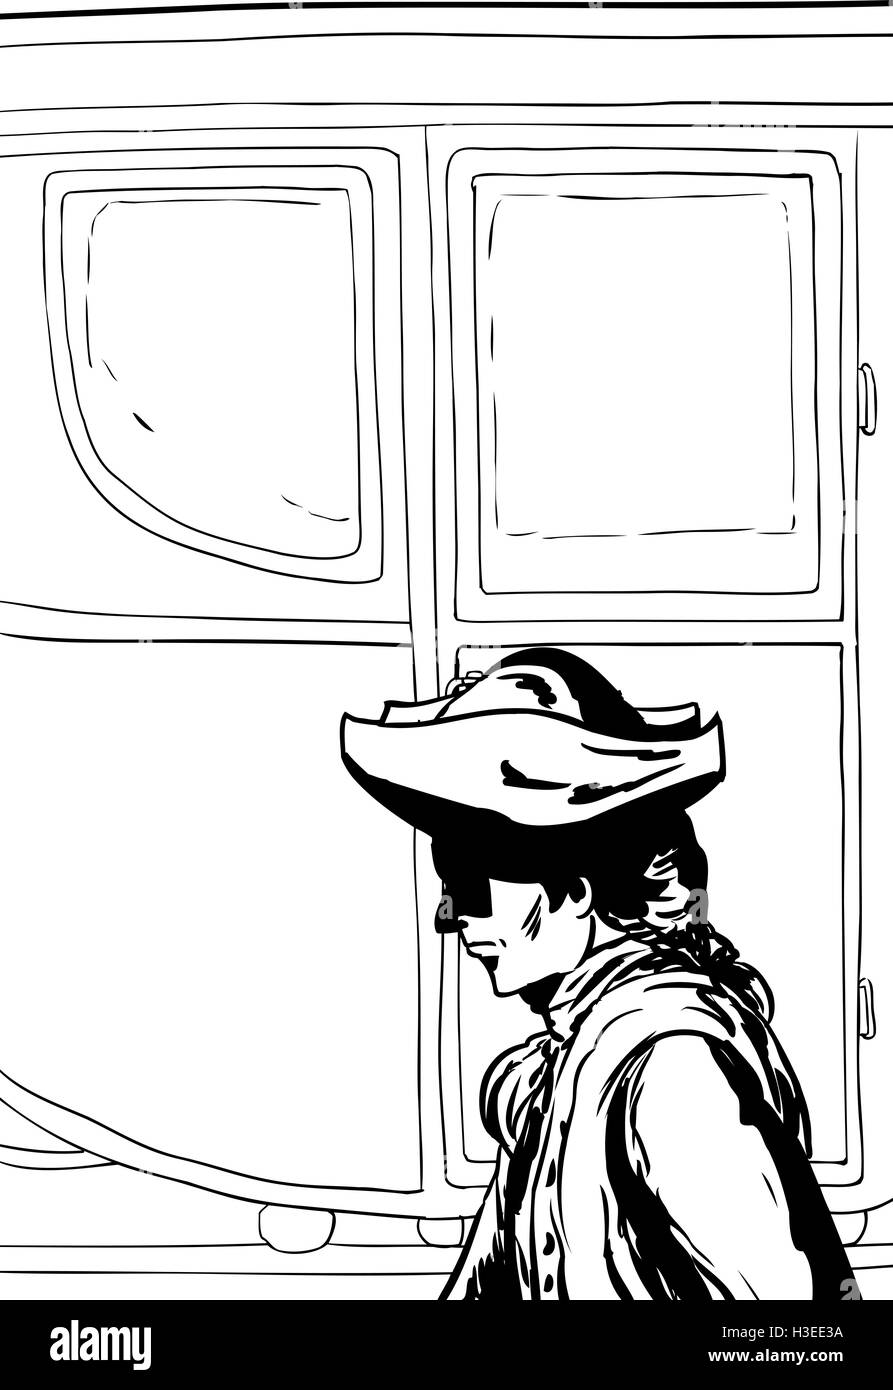 Outlined side view of 18th century man in hat walking past fancy empty buggy - Stock Image